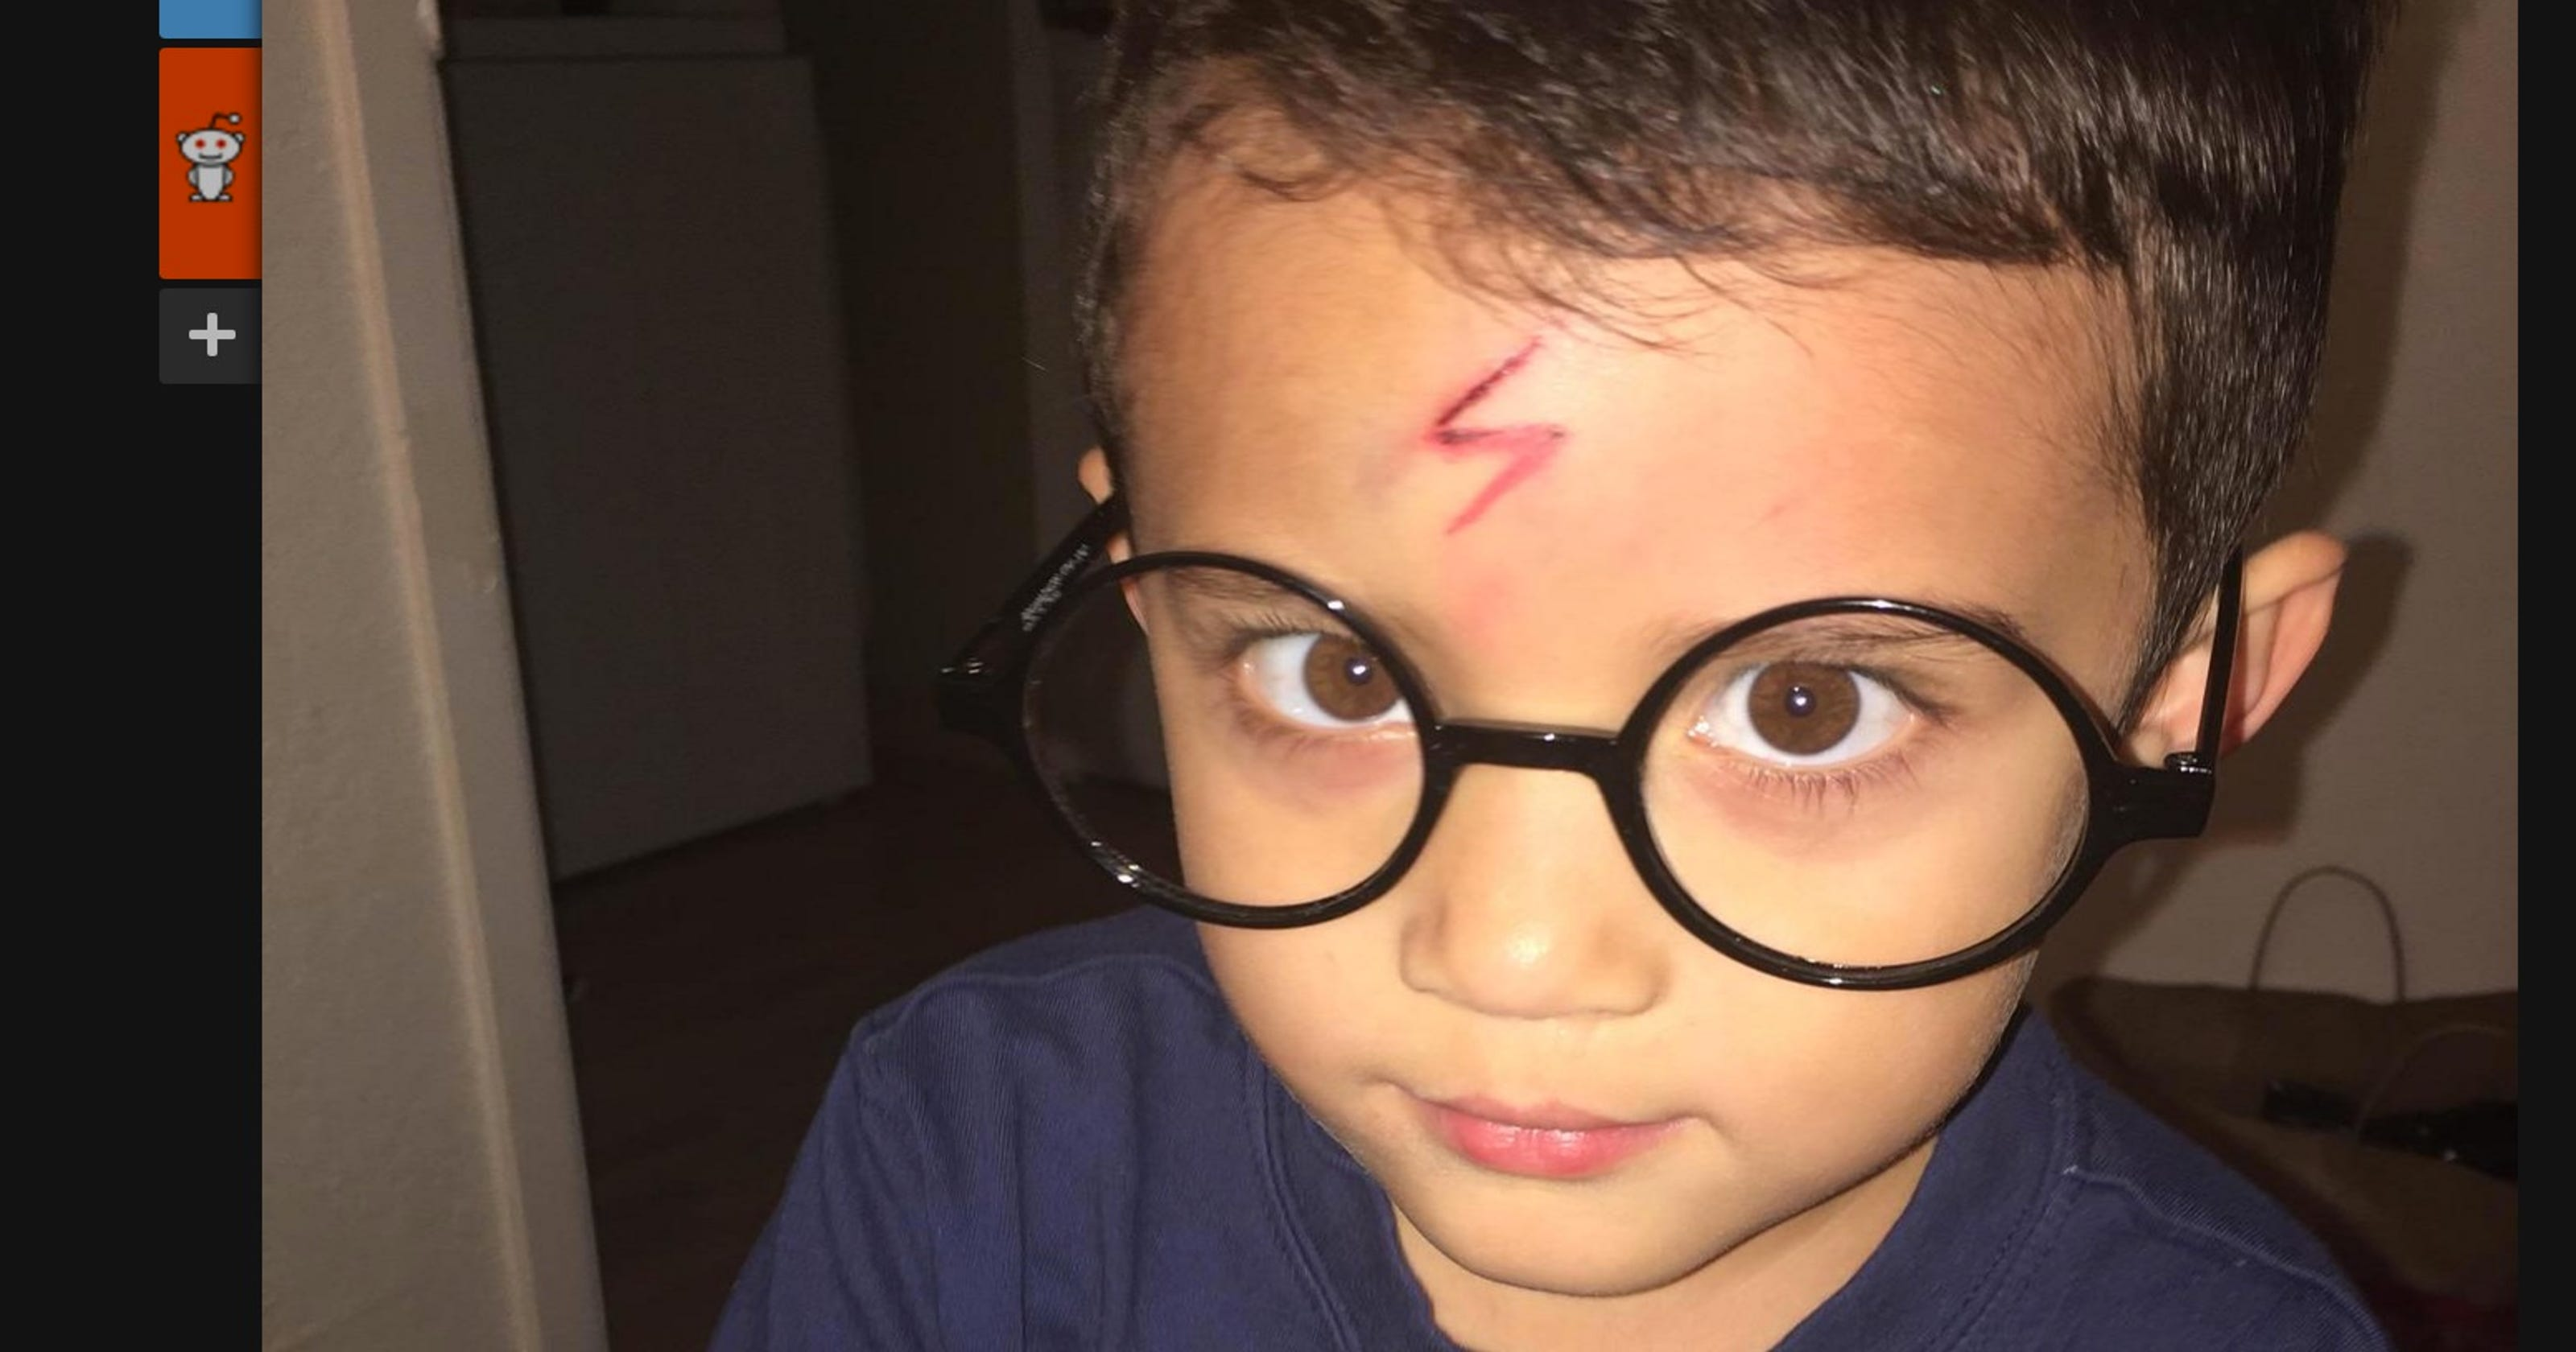 Mom Turns Boys Forehead Cut Into Harry Potter Themed Scar